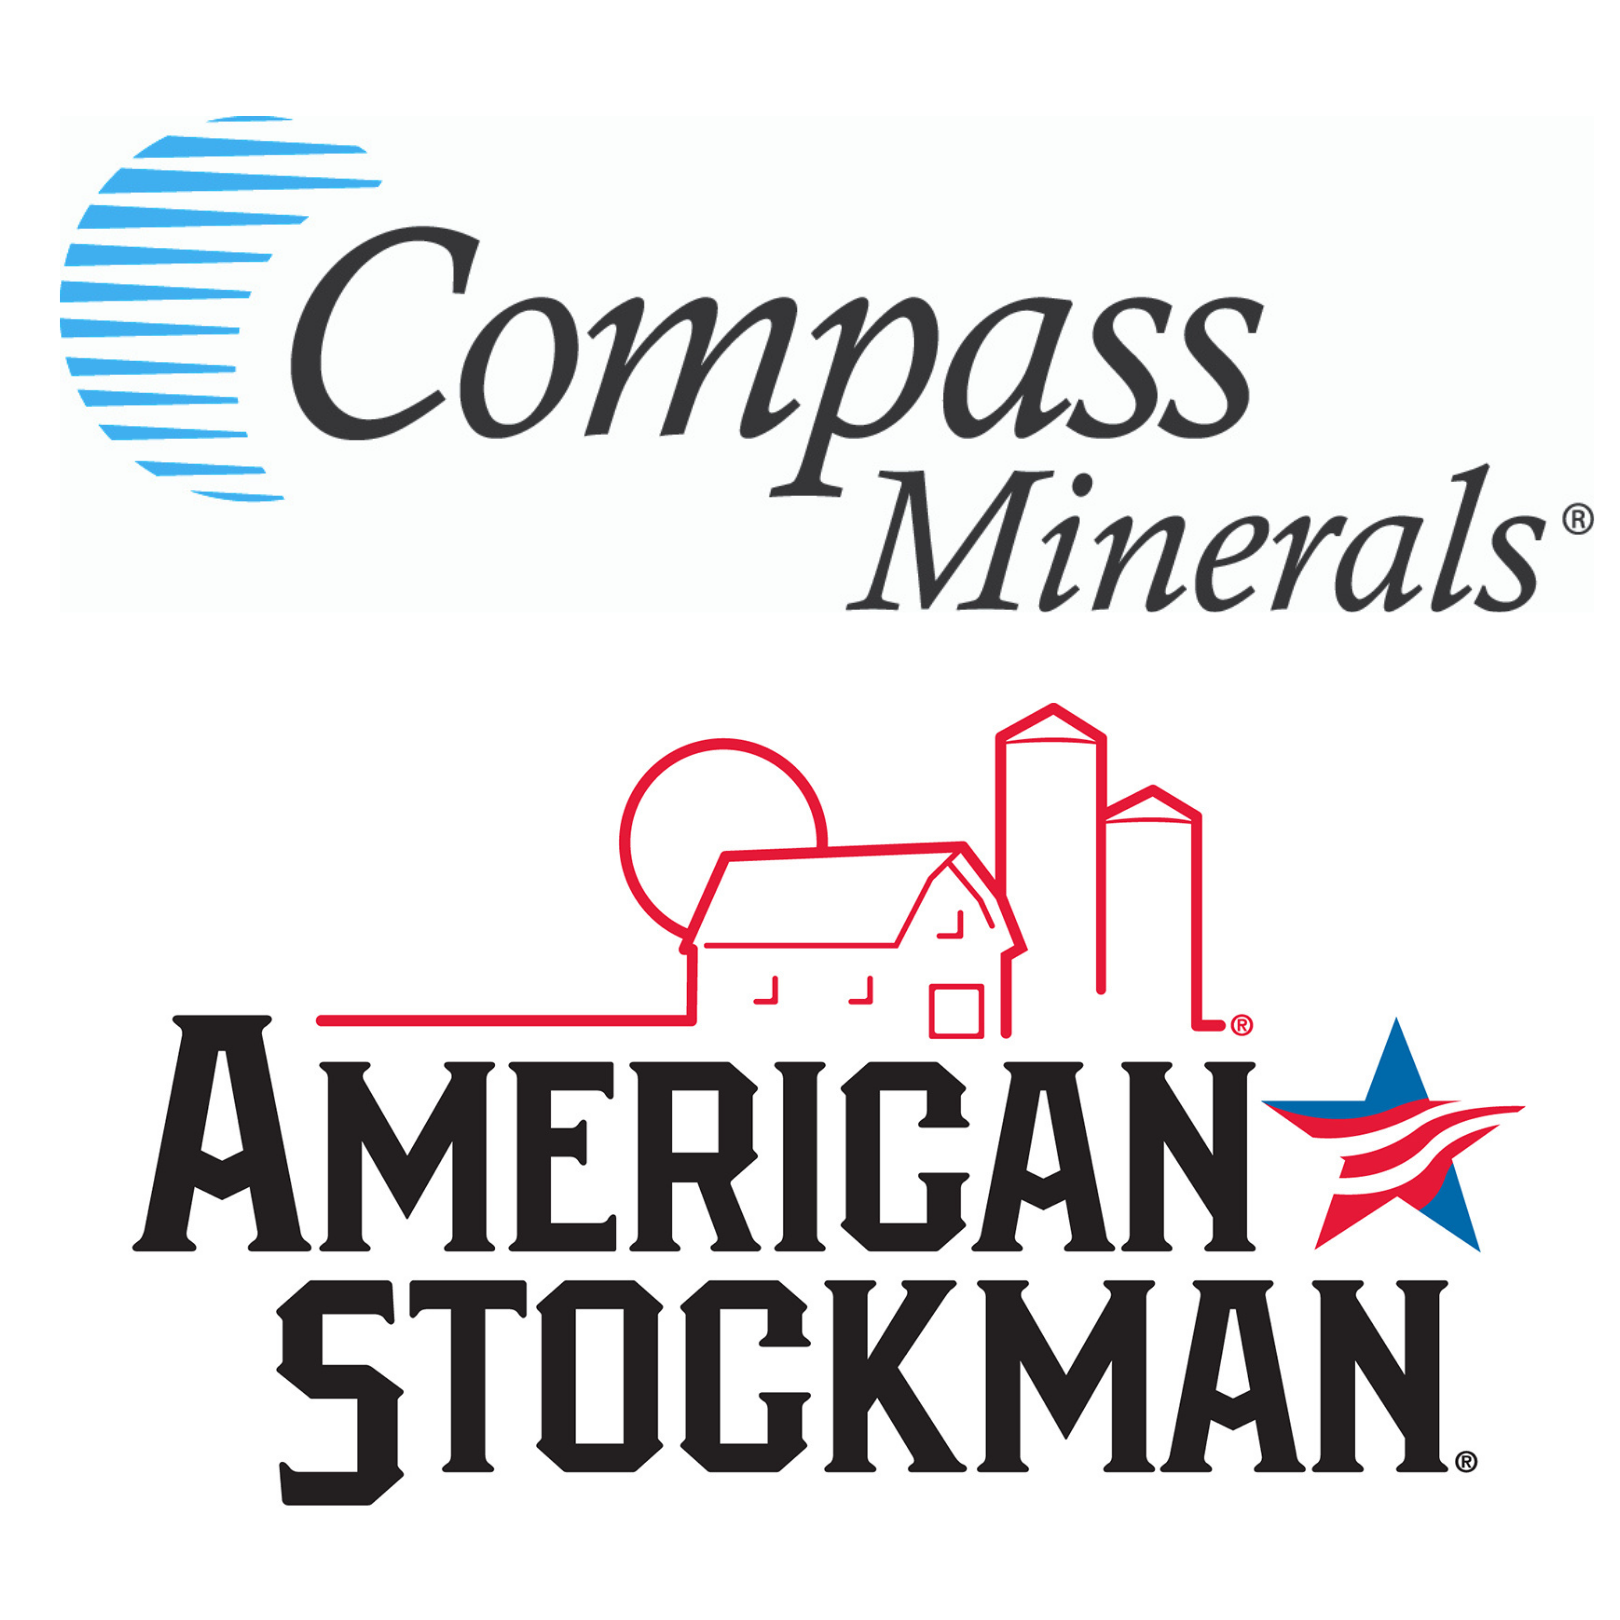 Compass Minerals/American Stockman